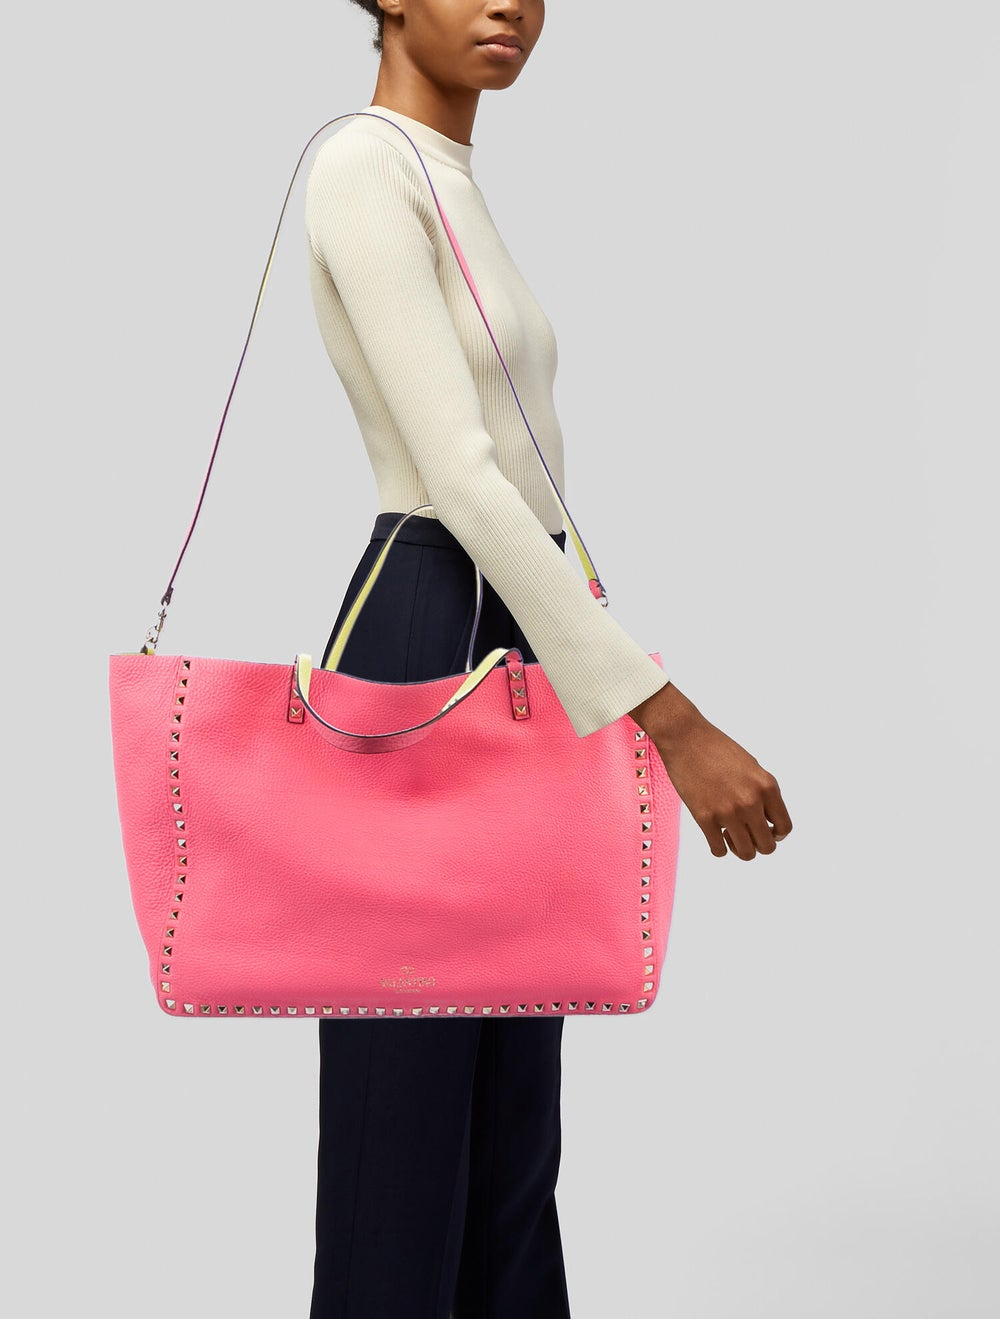 Valentino Leather Rockstud Tote Pink - image 2